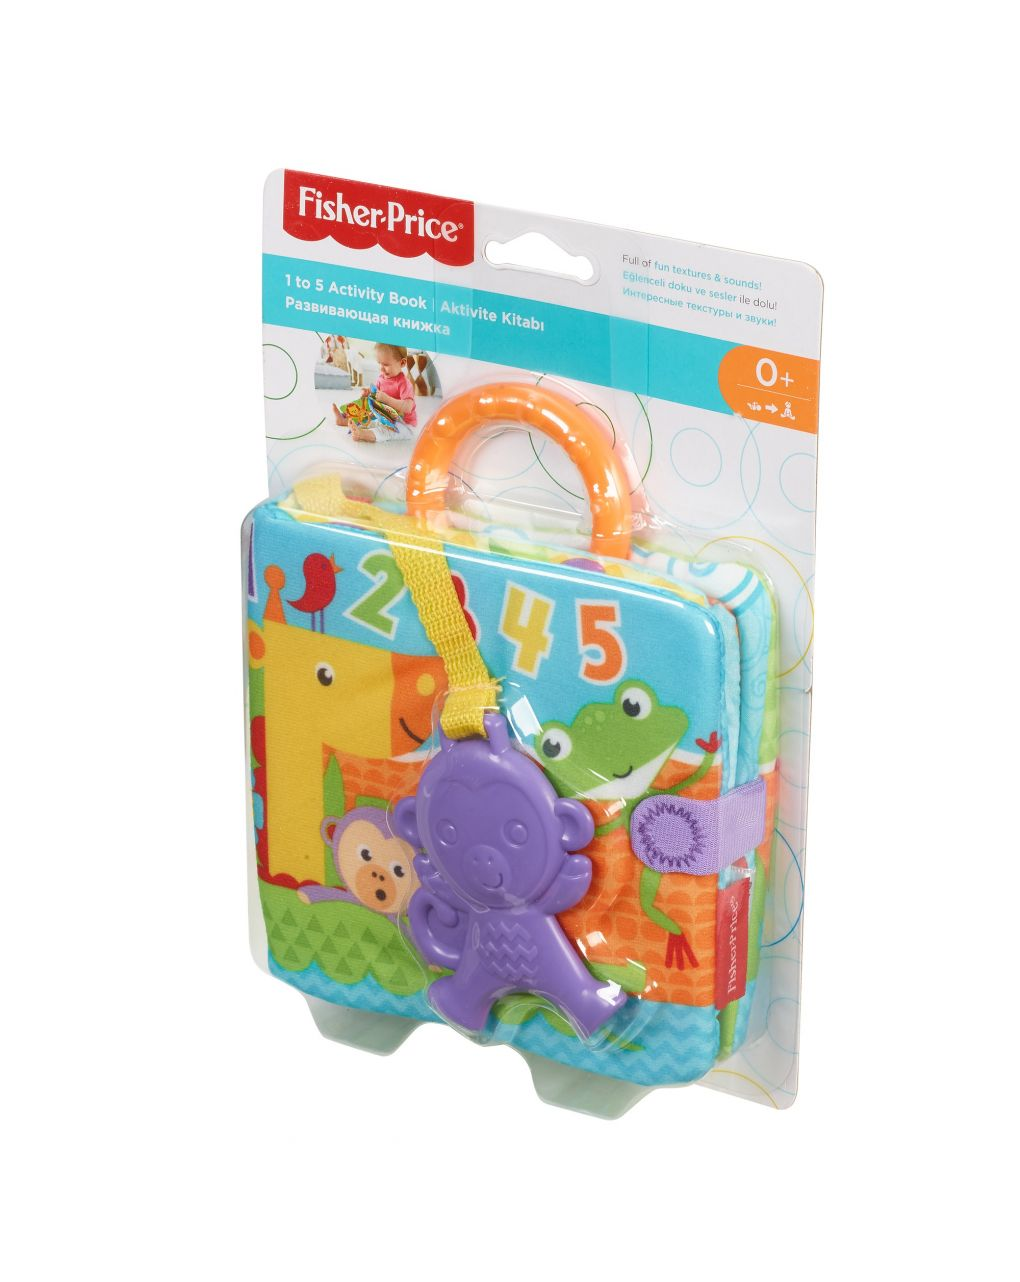 Fisher price - il mio primo libro attivita' - Fisher-Price